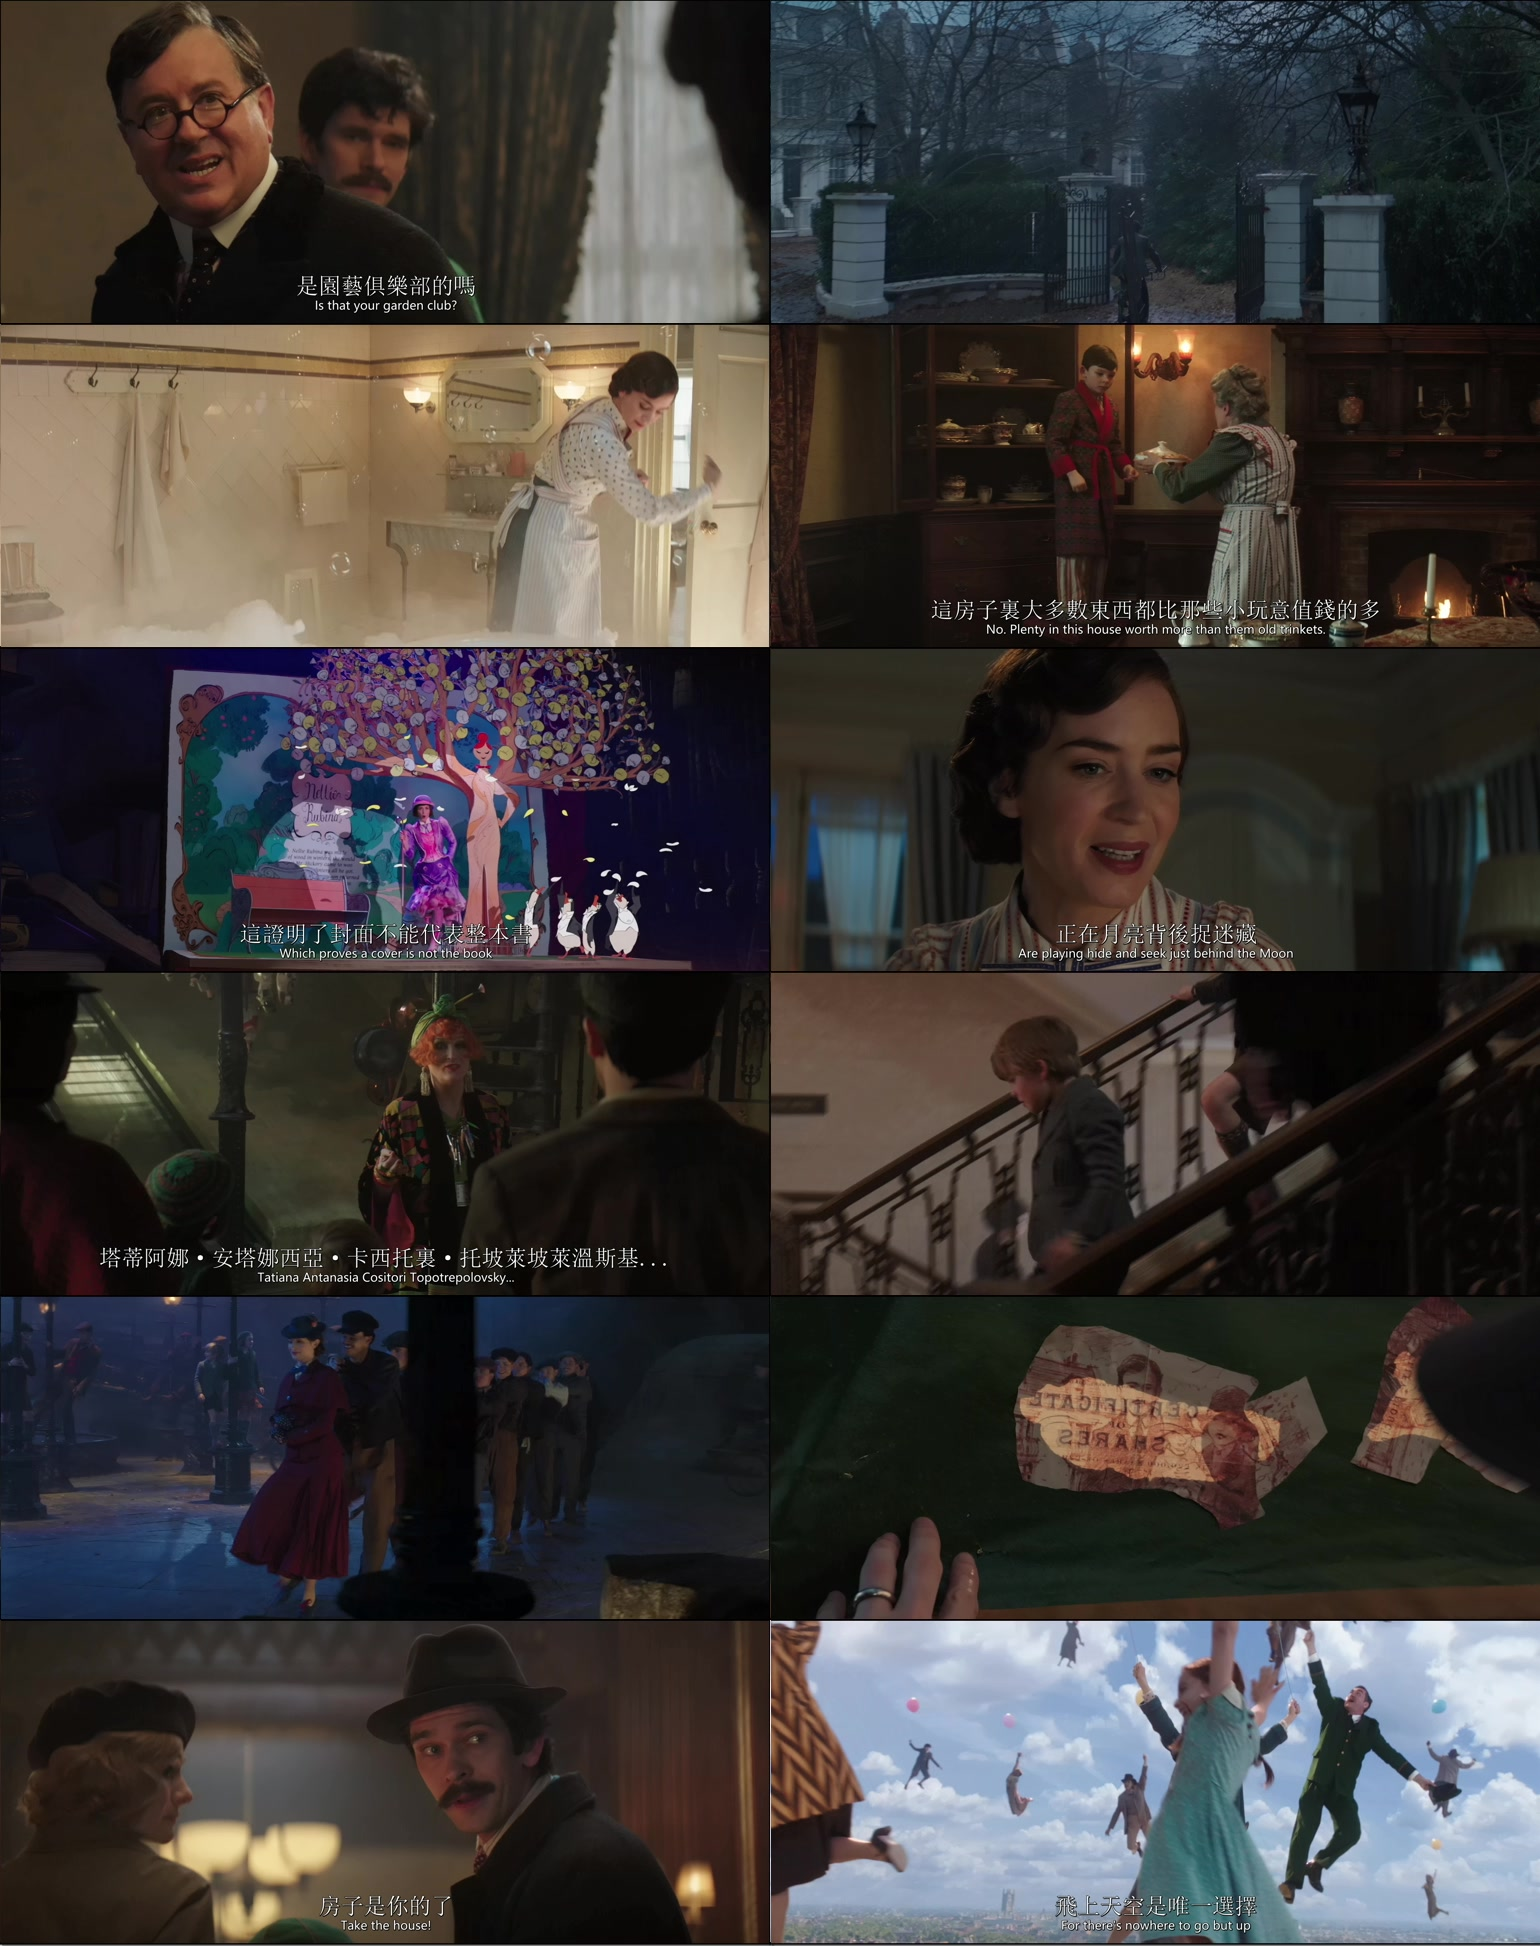 Mary.Poppins.Returns.2018.1080p.BluRay.x264-DRONES.mkv